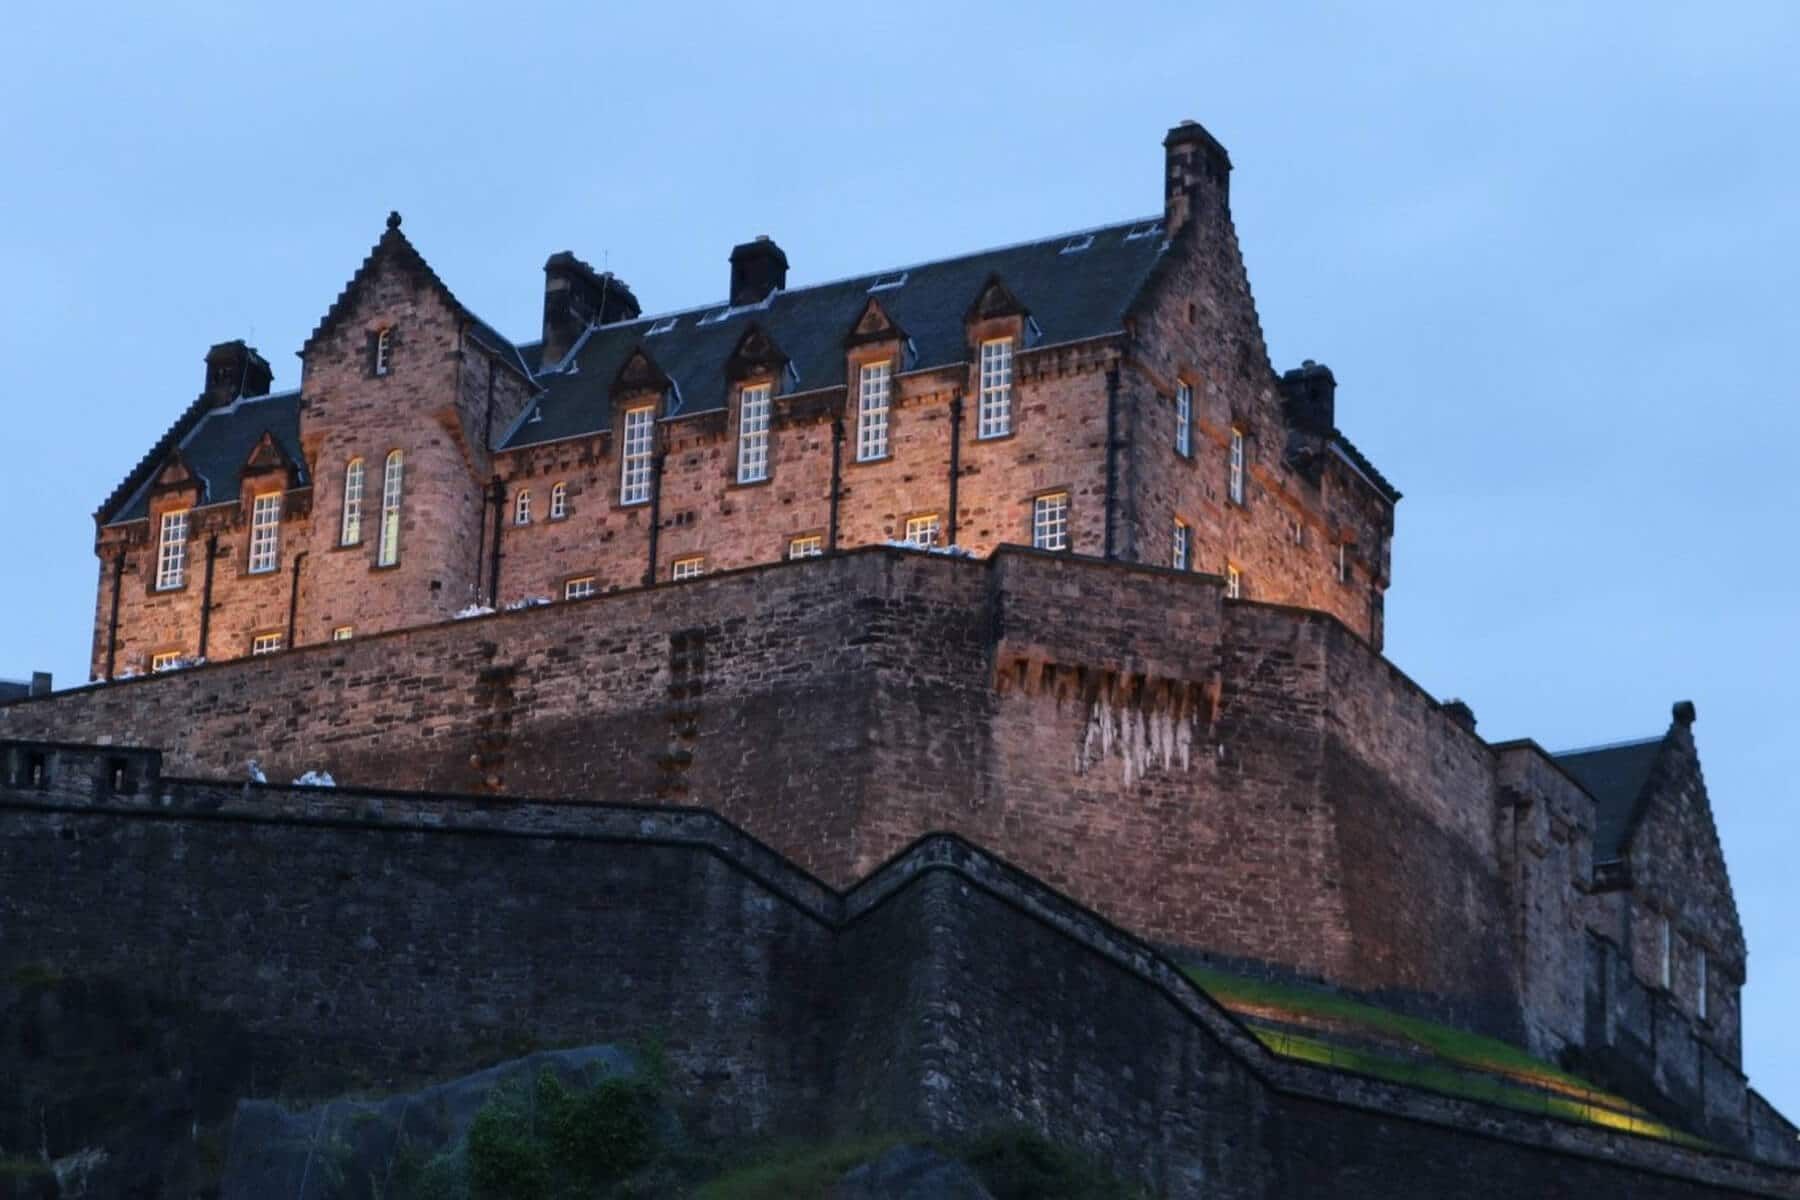 A photo of Edinburgh Castle in the gathering twilight